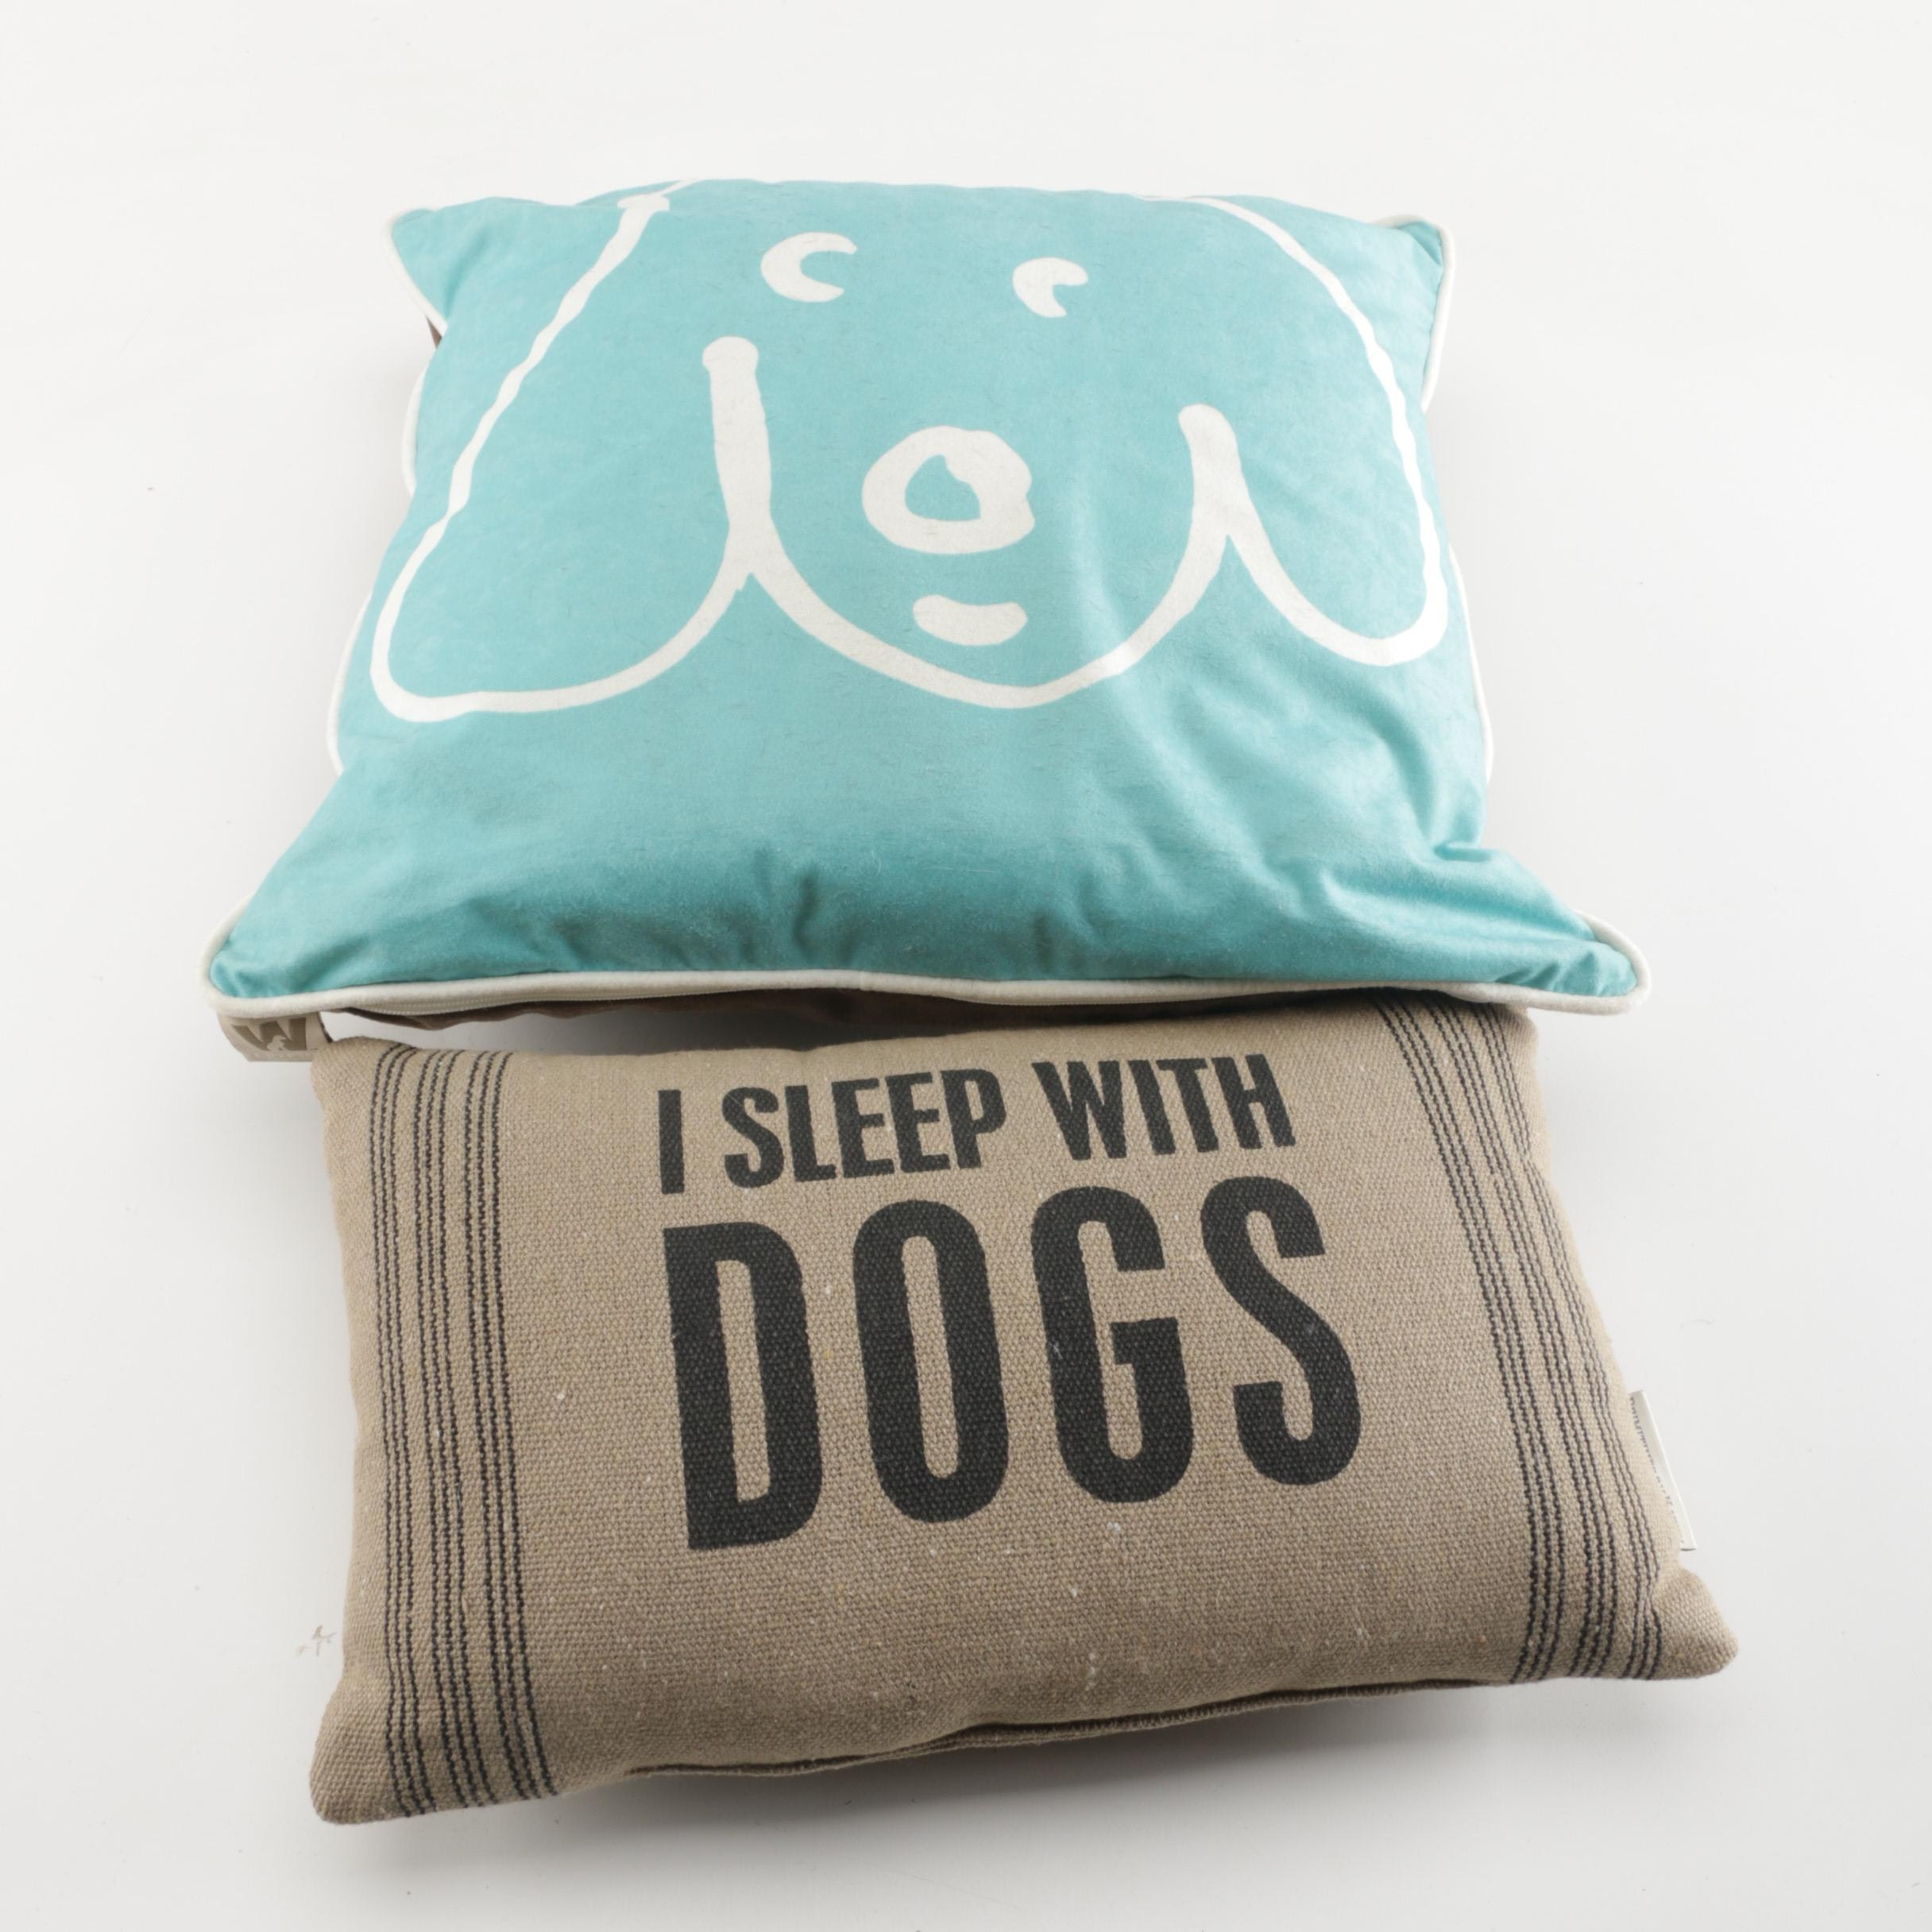 Dog-Themed Throw Pillows